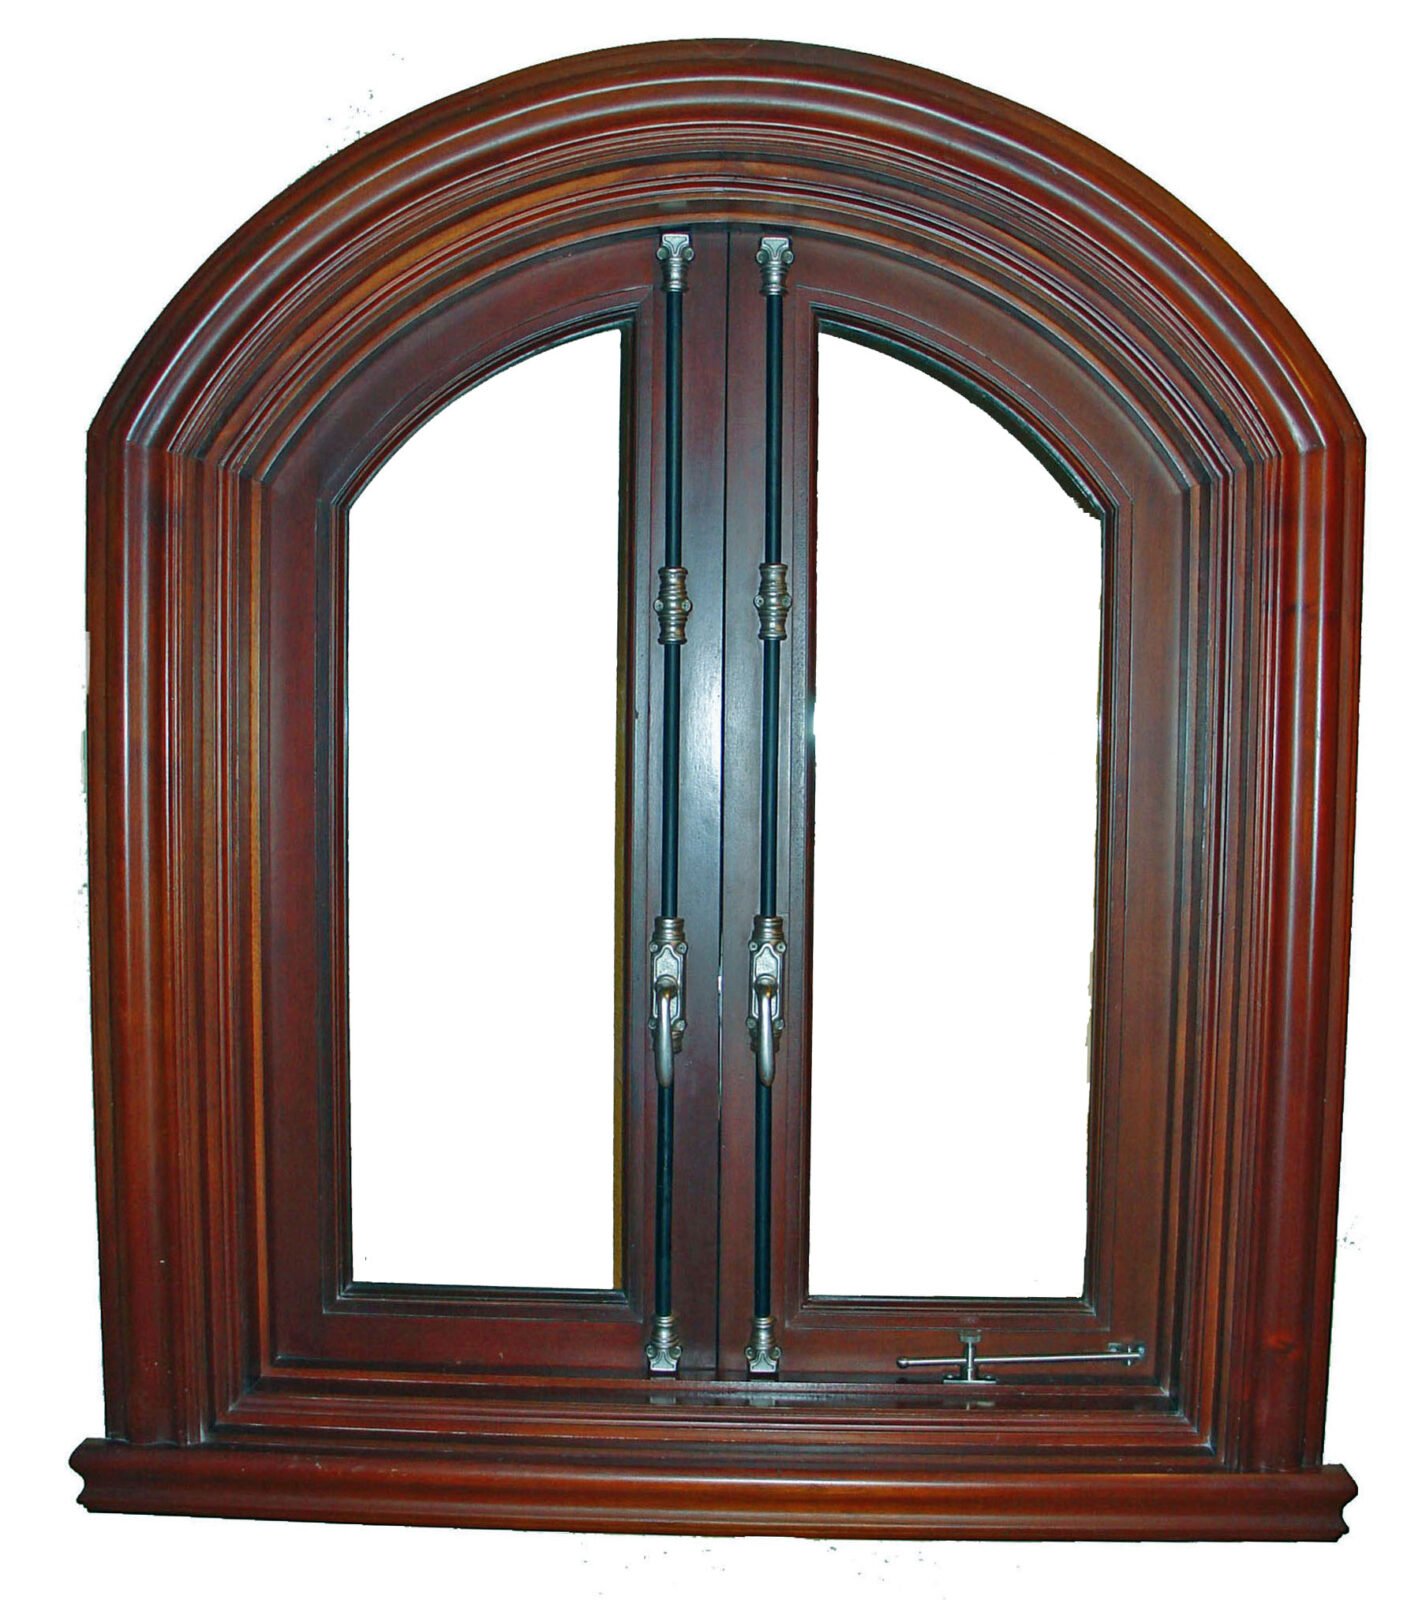 MIAMI MAHOGANY CASEMENT WINDOW